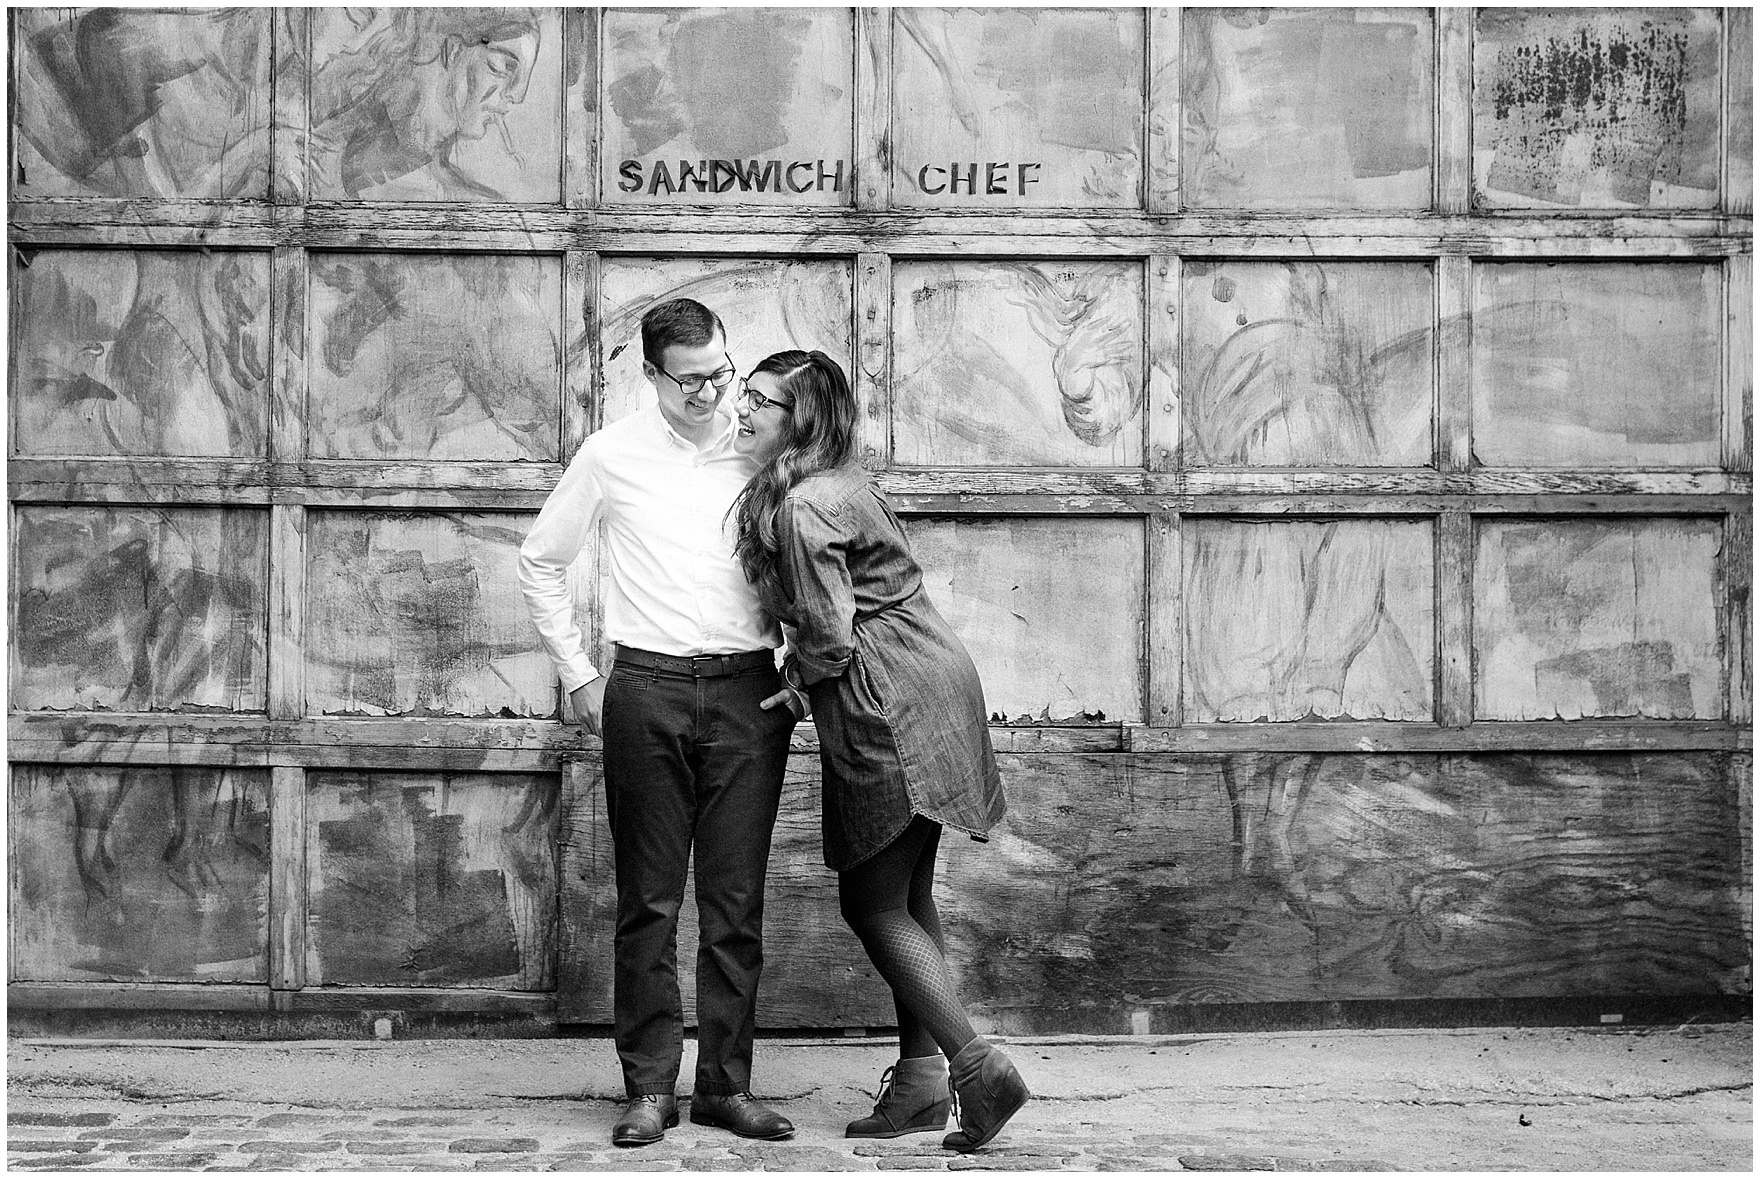 A man and woman laugh during a West Loop Chicago photography session.